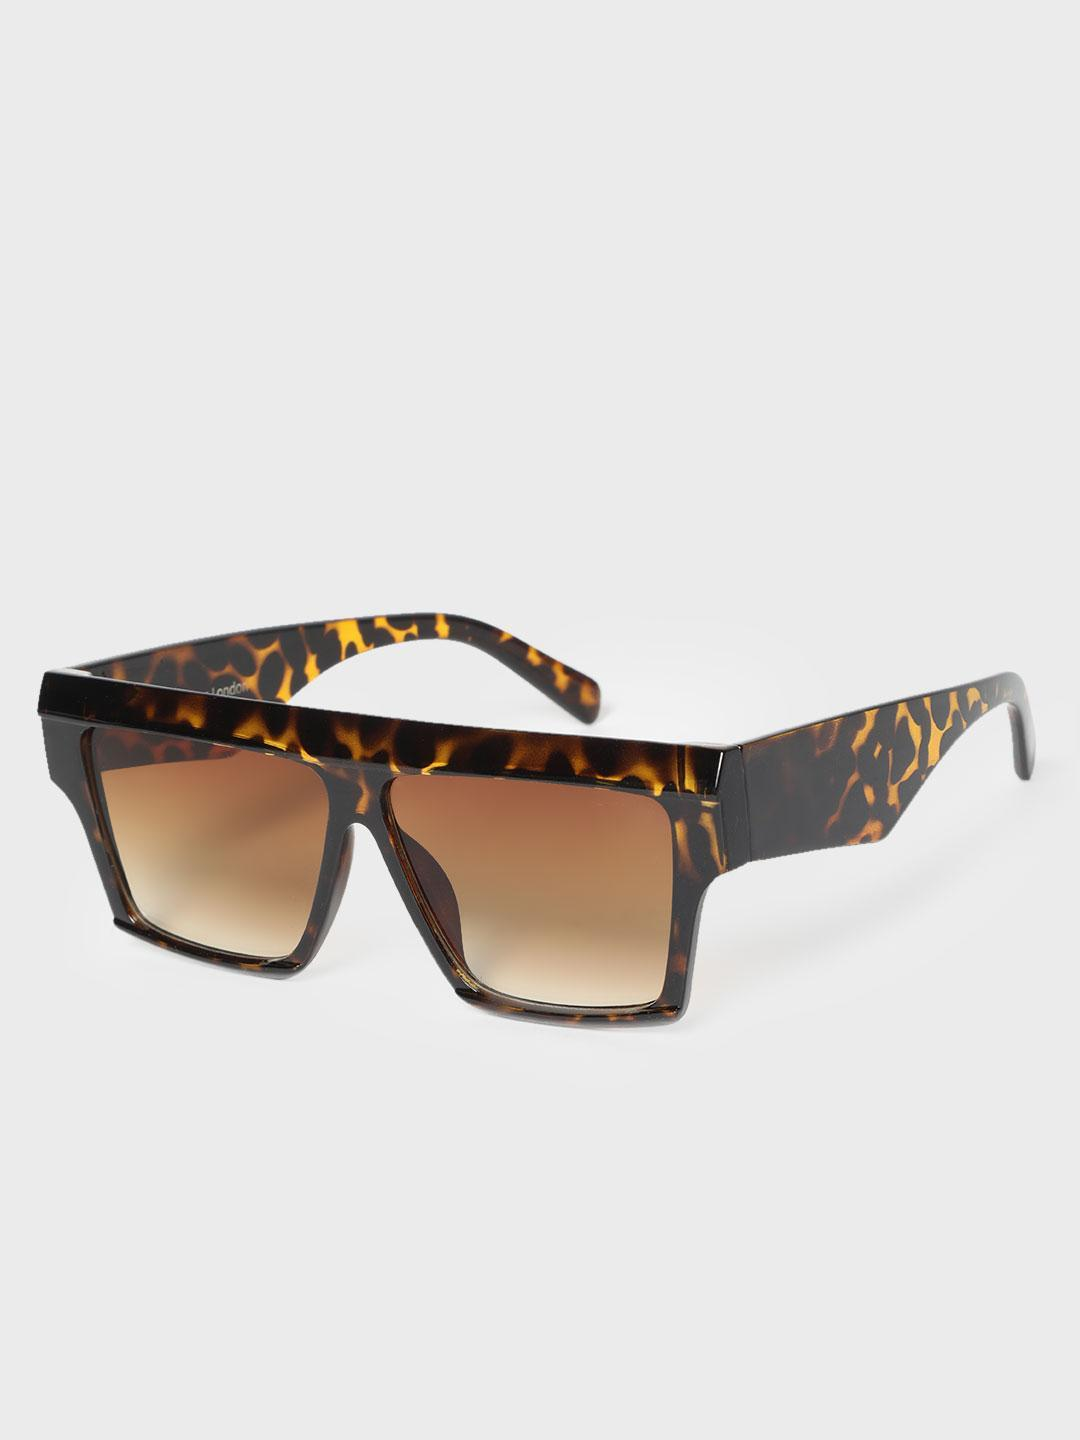 KOOVS Multi Tinted Lens Square Sunglasses 1